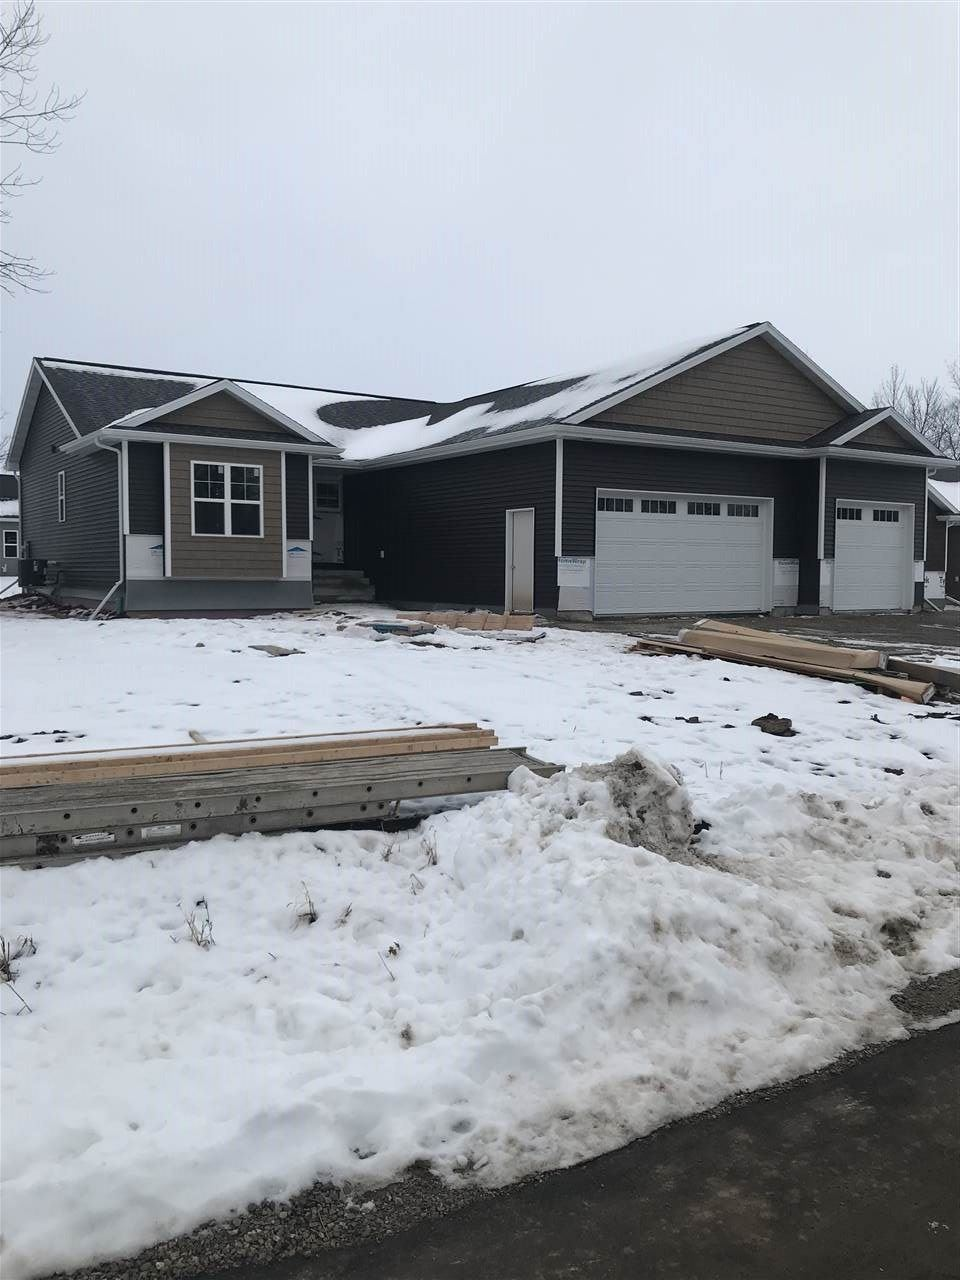 2538 CAVALRY Lane, Neenah, WI 54956 - MLS#: 50232663